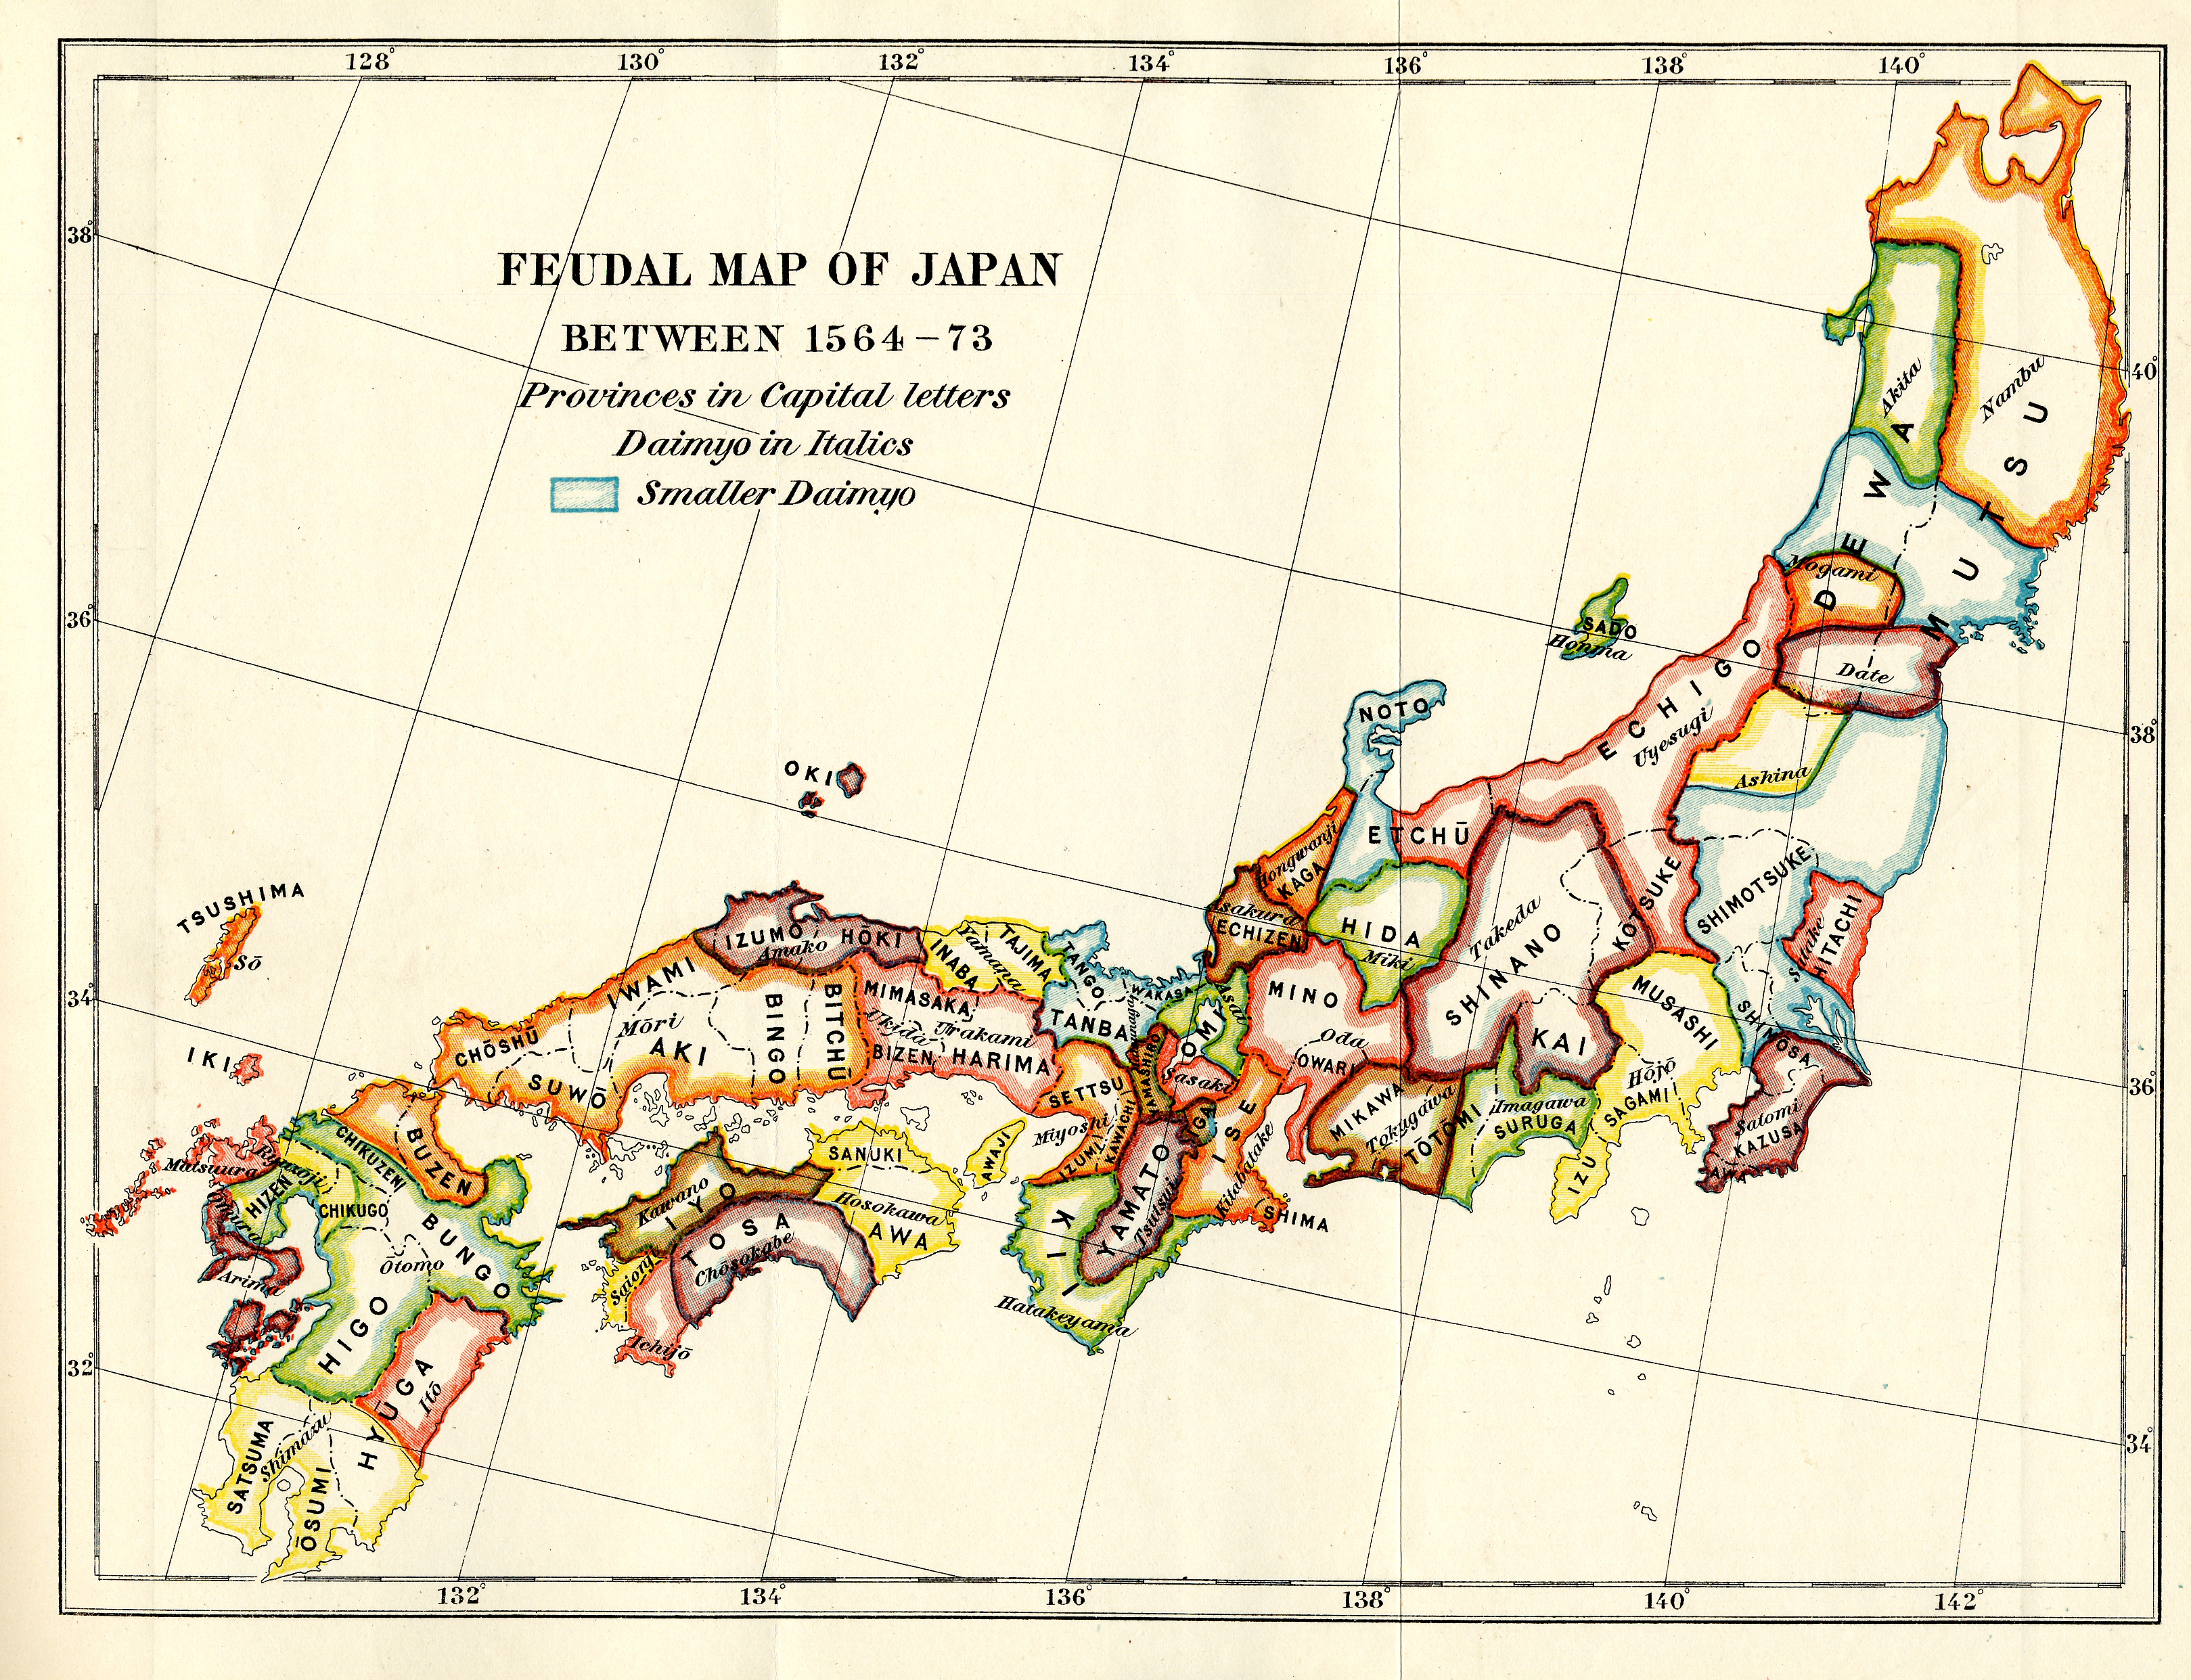 feudal_map_of_japan_between_1564-73.jpg